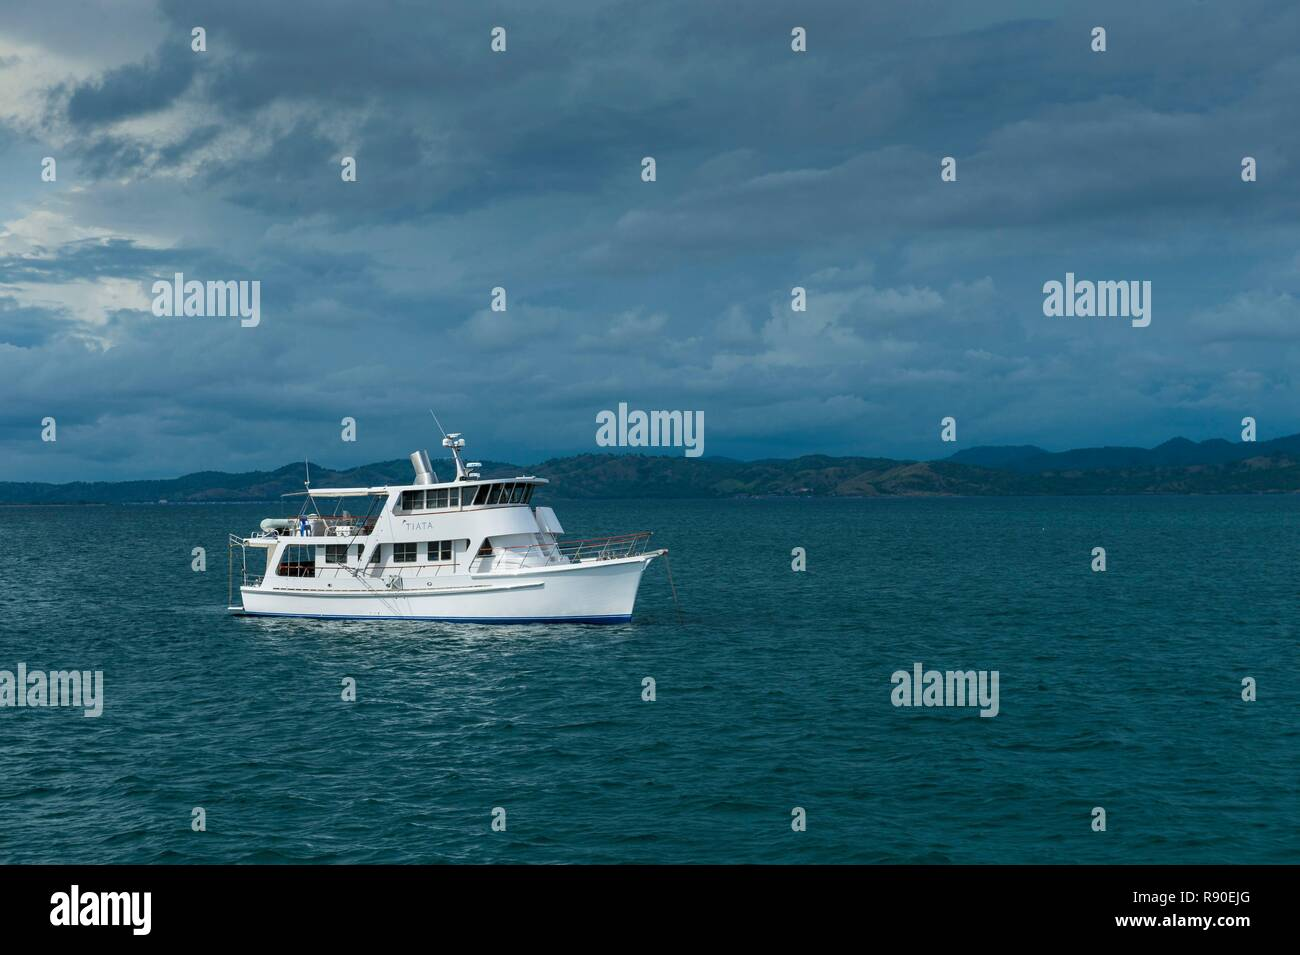 Papua New Guinea, National Capitale district, Port Moresby, yacht in the bay - Stock Image